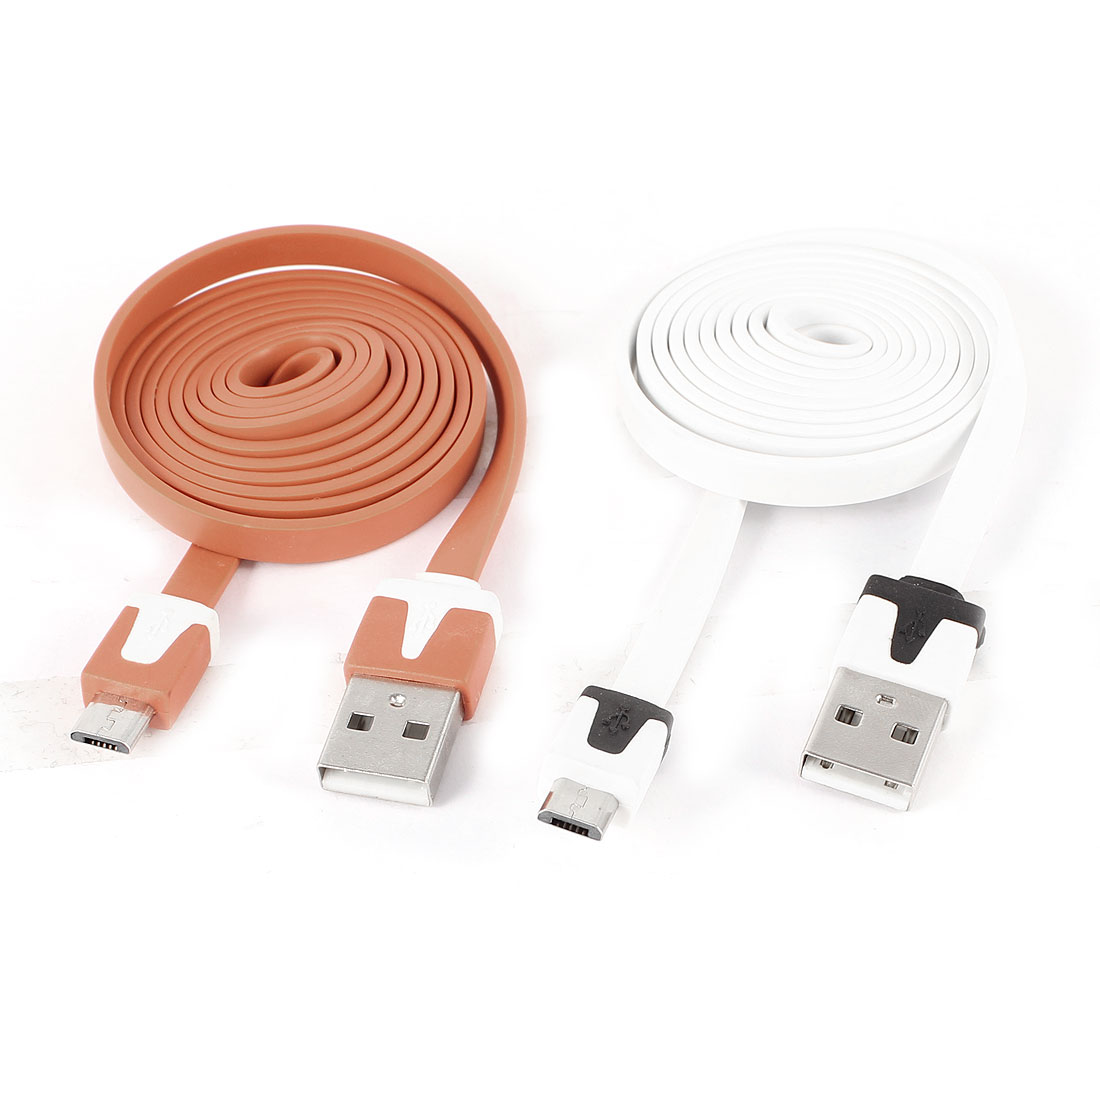 Unique Bargains 2pcs White Orange USB A to Micro B 5Pin M/M Flat Data Charging Cable 1M 3.28Ft